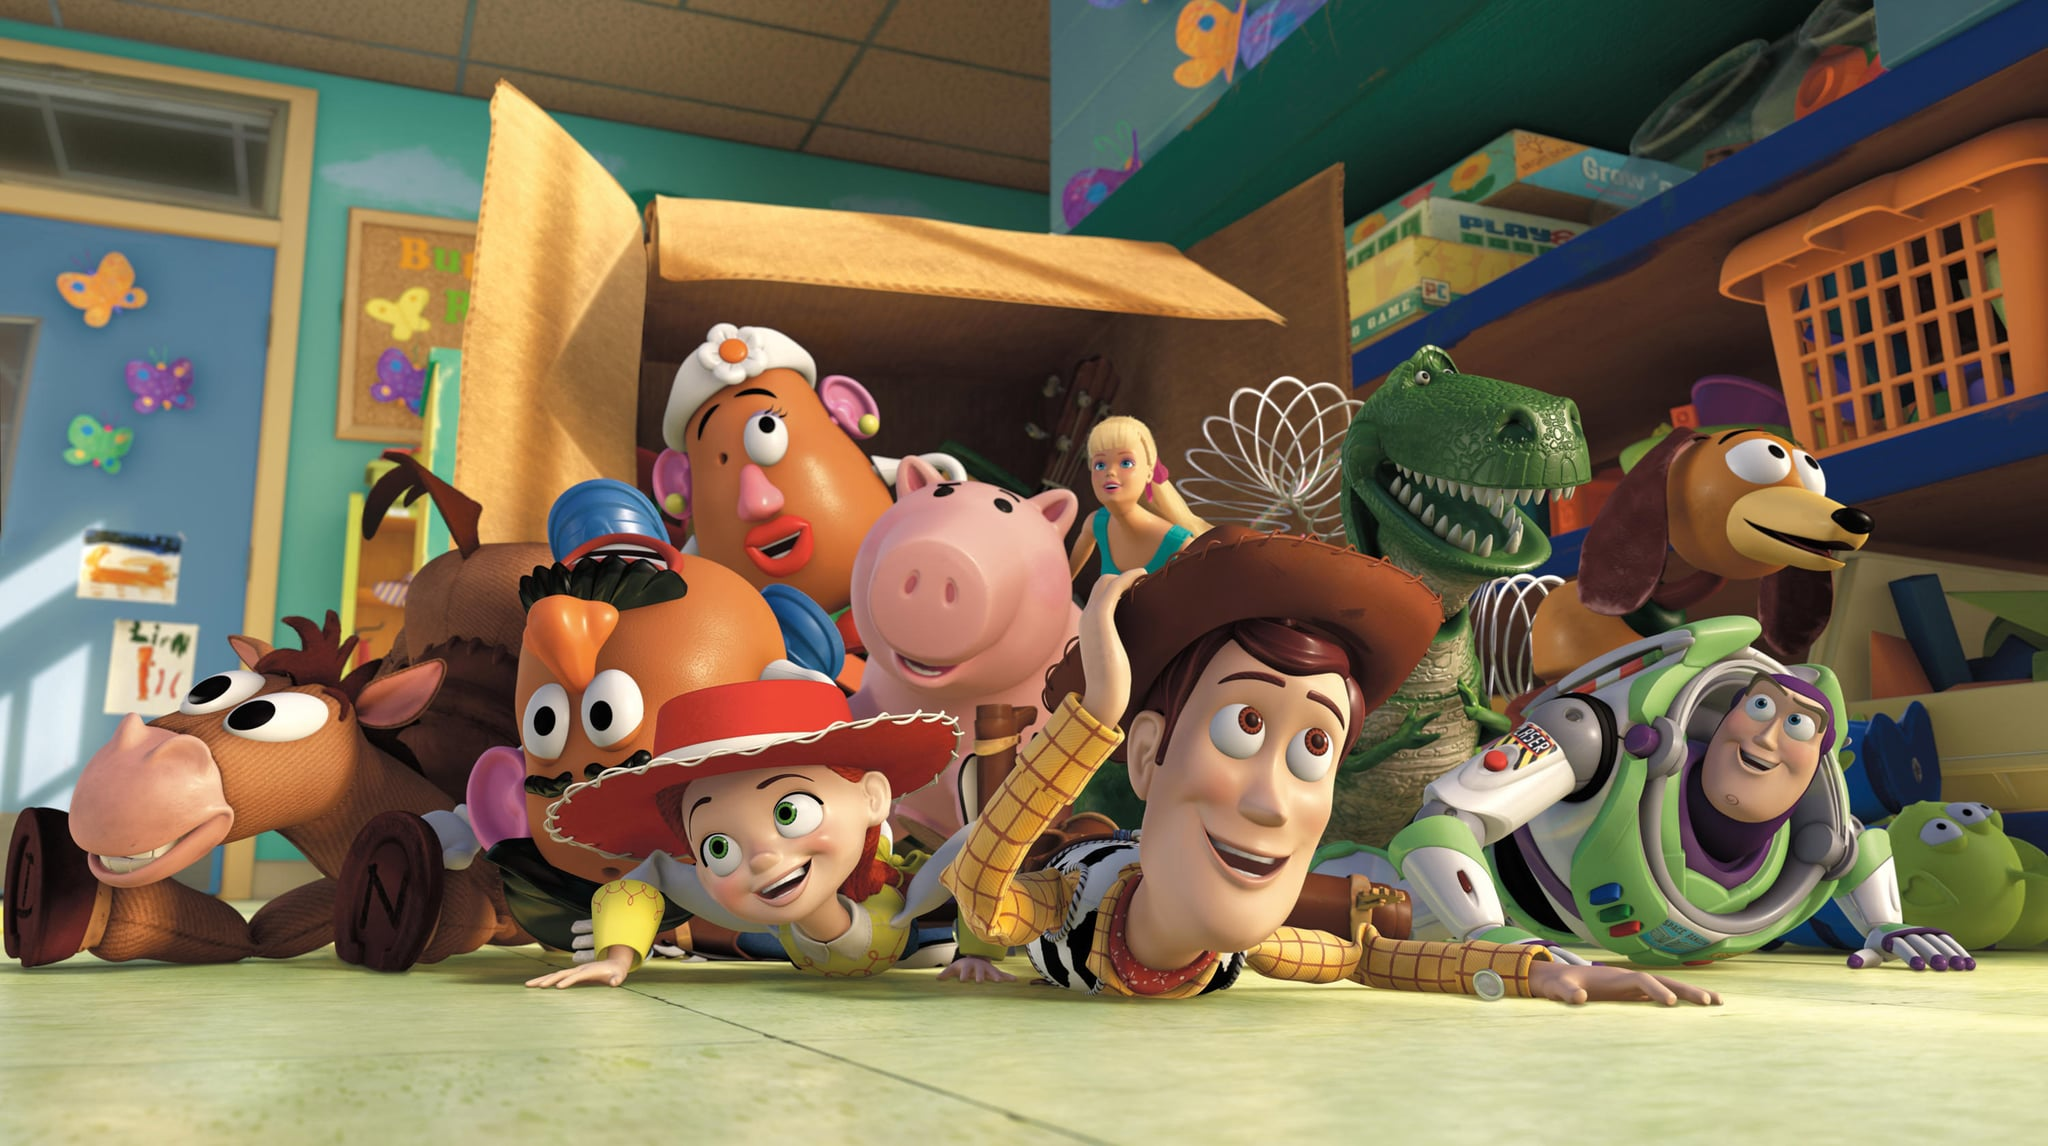 TOY STORY 3, Mr. Potato Head (second from left, voice: Don Rickles), Jessie (left of centre, voice: Joan Cusack), Woody (right of centre, voice: Tom Hanks), Buzz Lightyear (front right, voice: Tim Allen), 2010. Buena Vista Pictures/courtesy Everett Collection